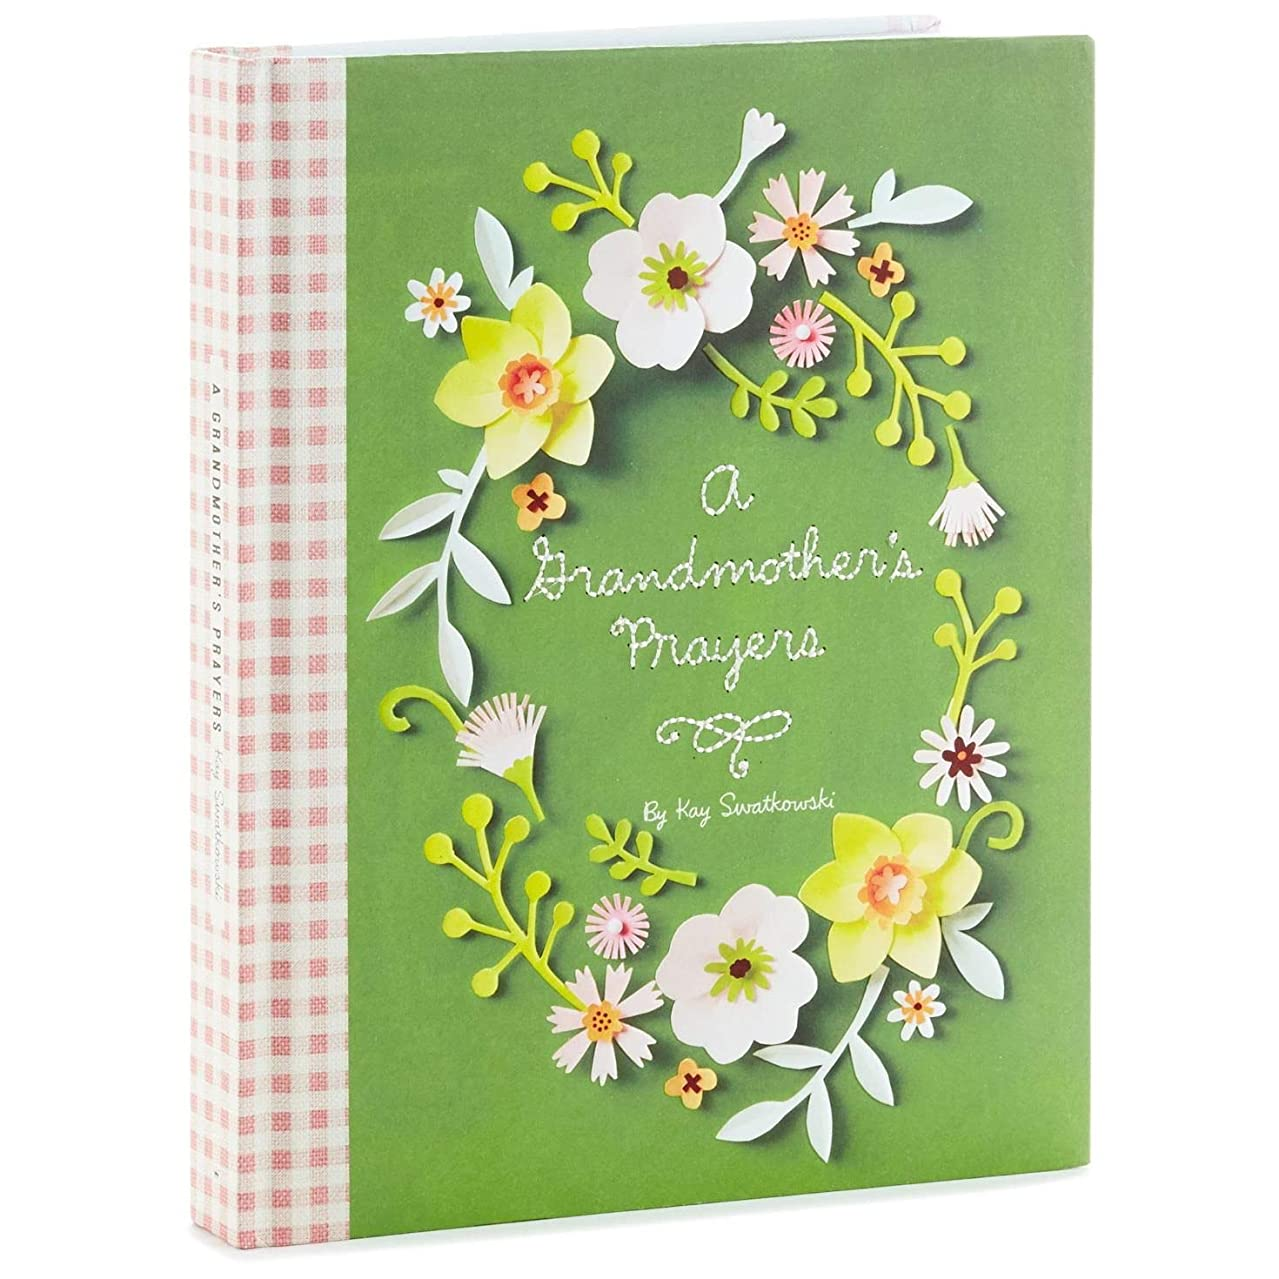 Hallmark A Grandmother's Prayers: 60 Days of Devotions and Prayers Book Religious Books Religious Family & Relationships